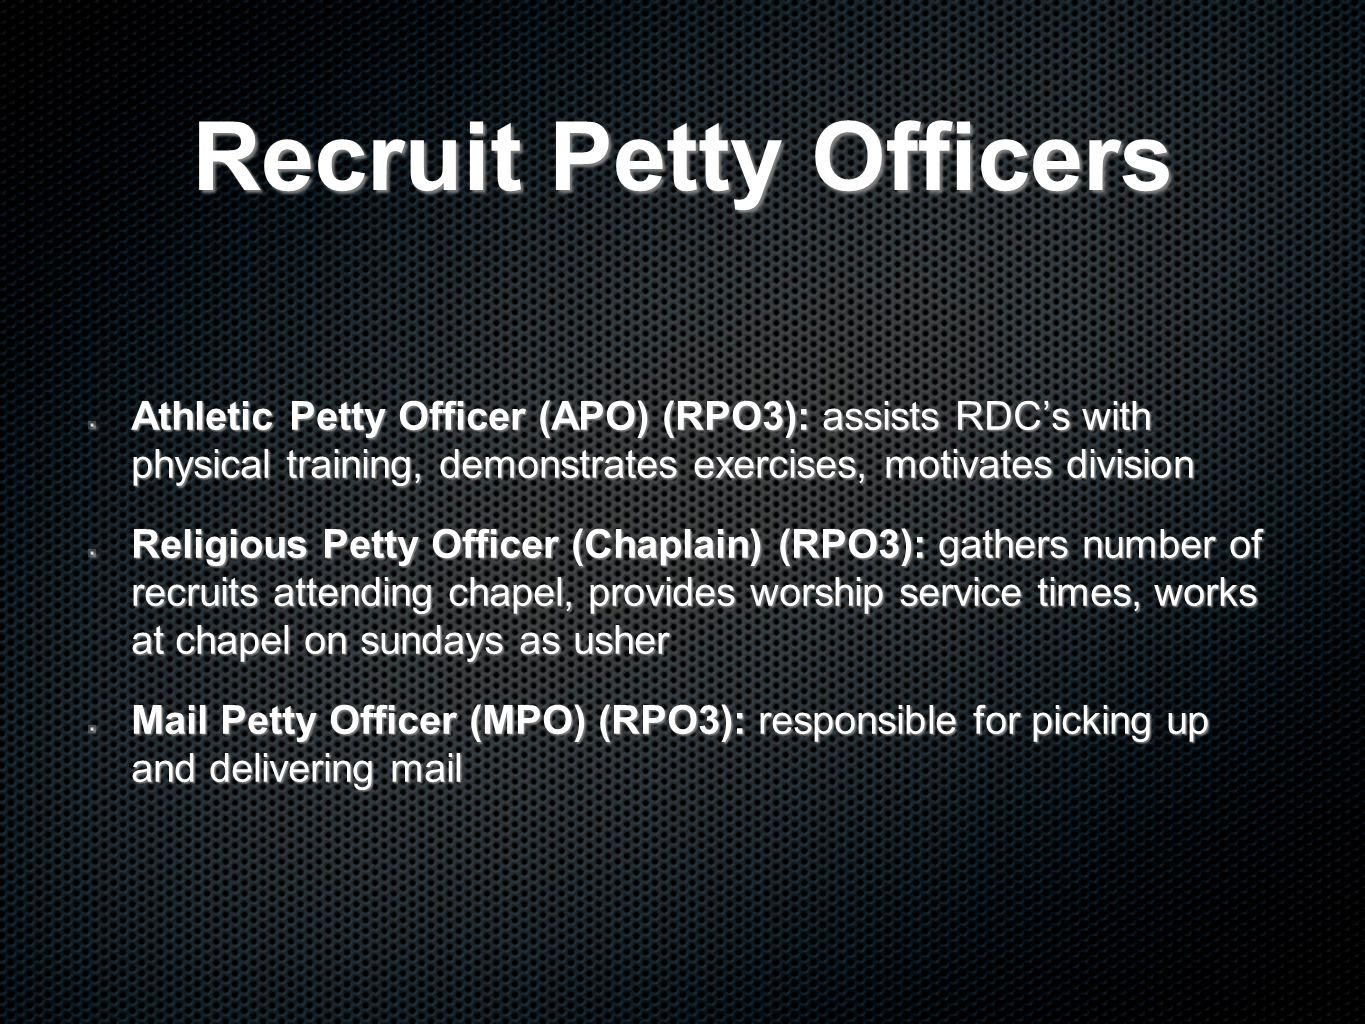 Recruit Petty Officers